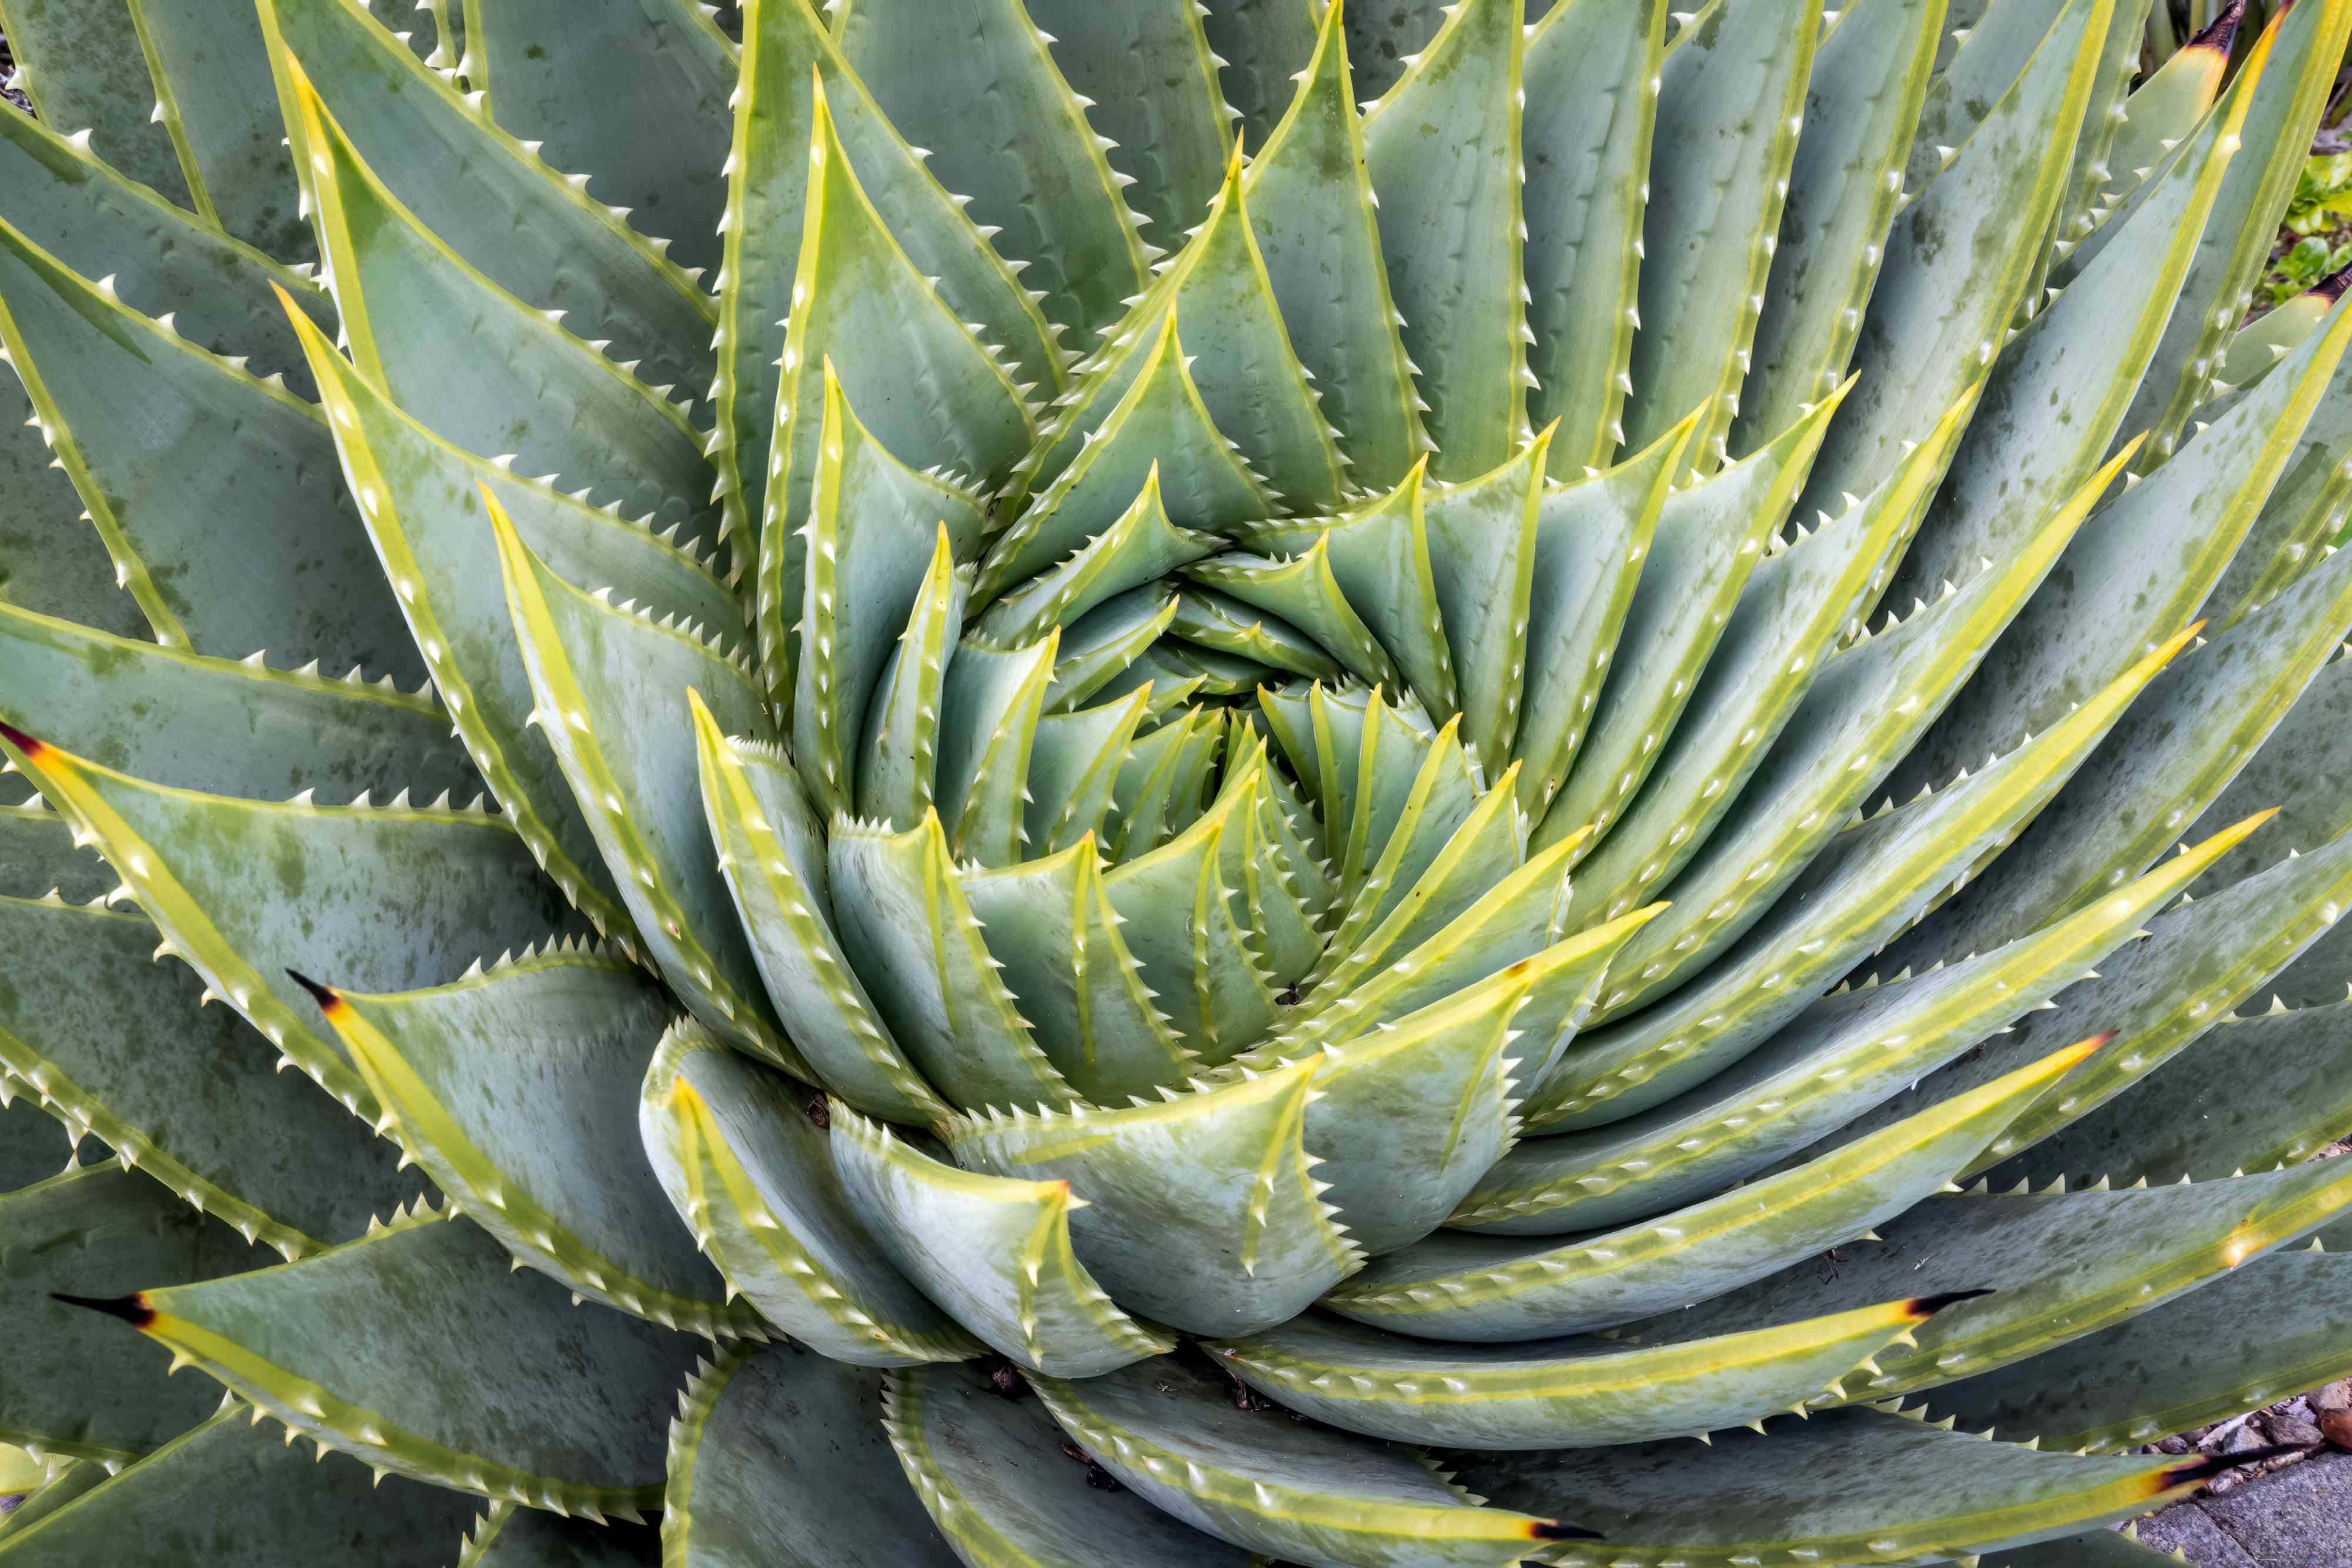 Spiral aloe vera succulent with triangular leaves spiraling inward with spiked edges closeup